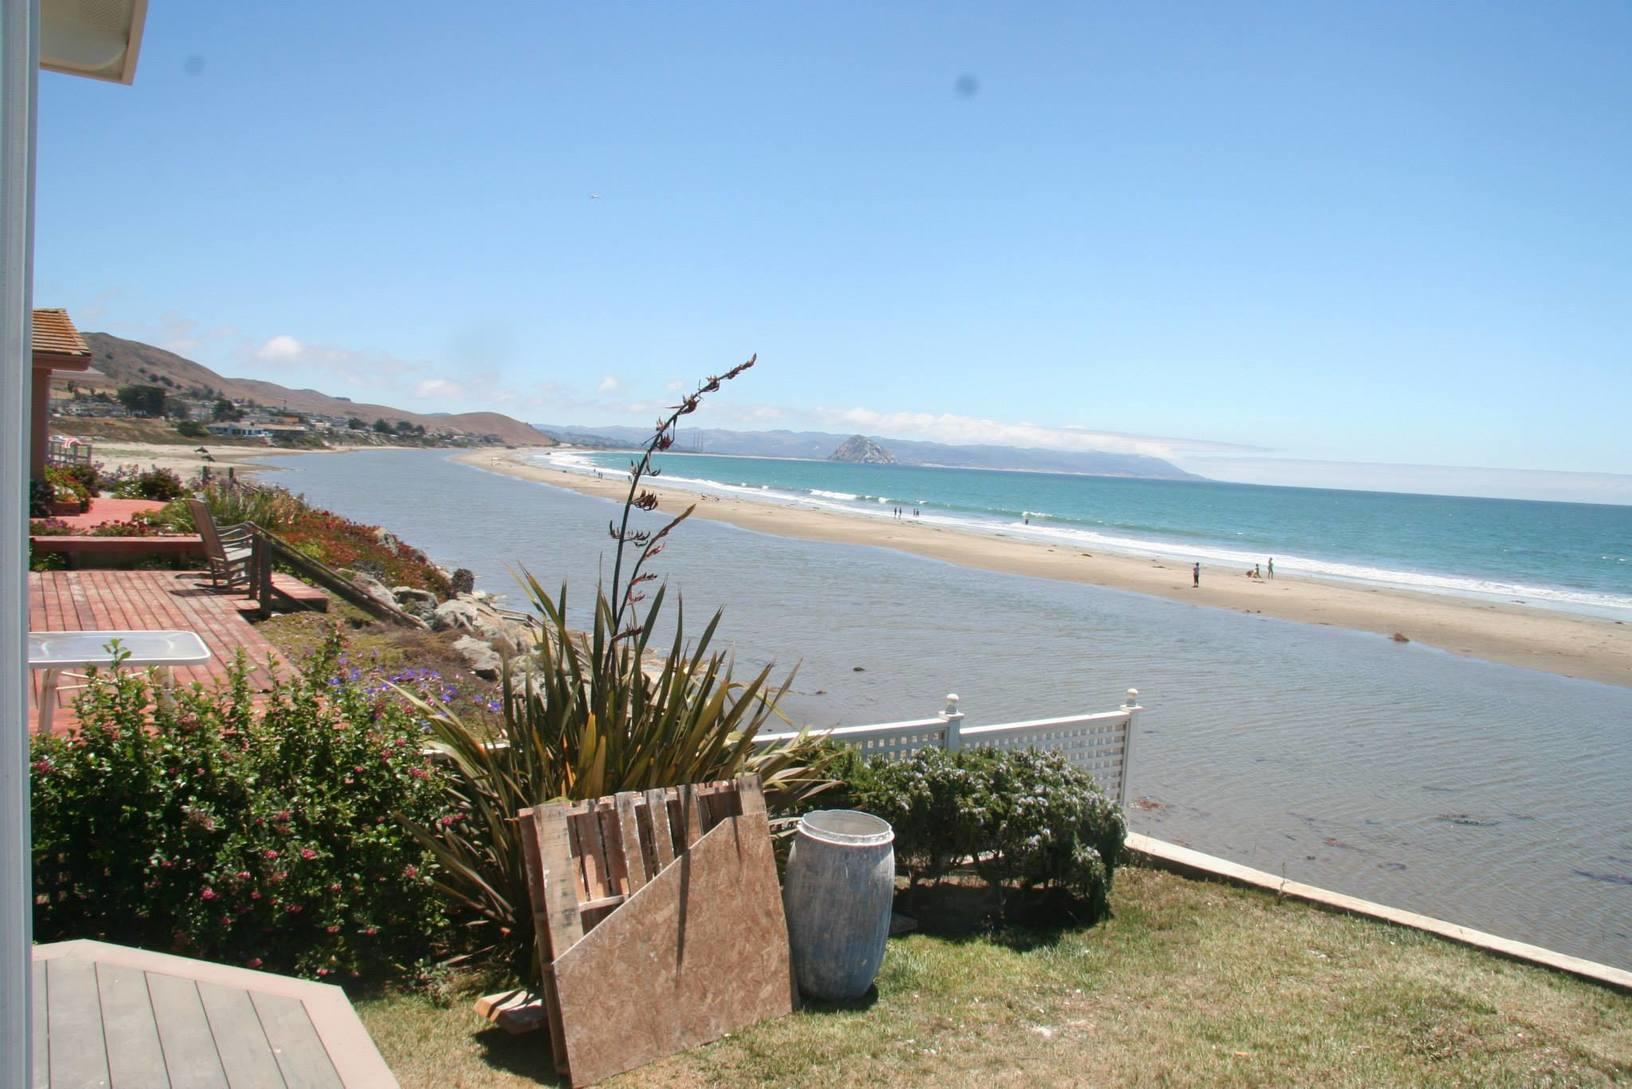 Beachfront Home Remodel in Cayucos, CA - The Ocean View